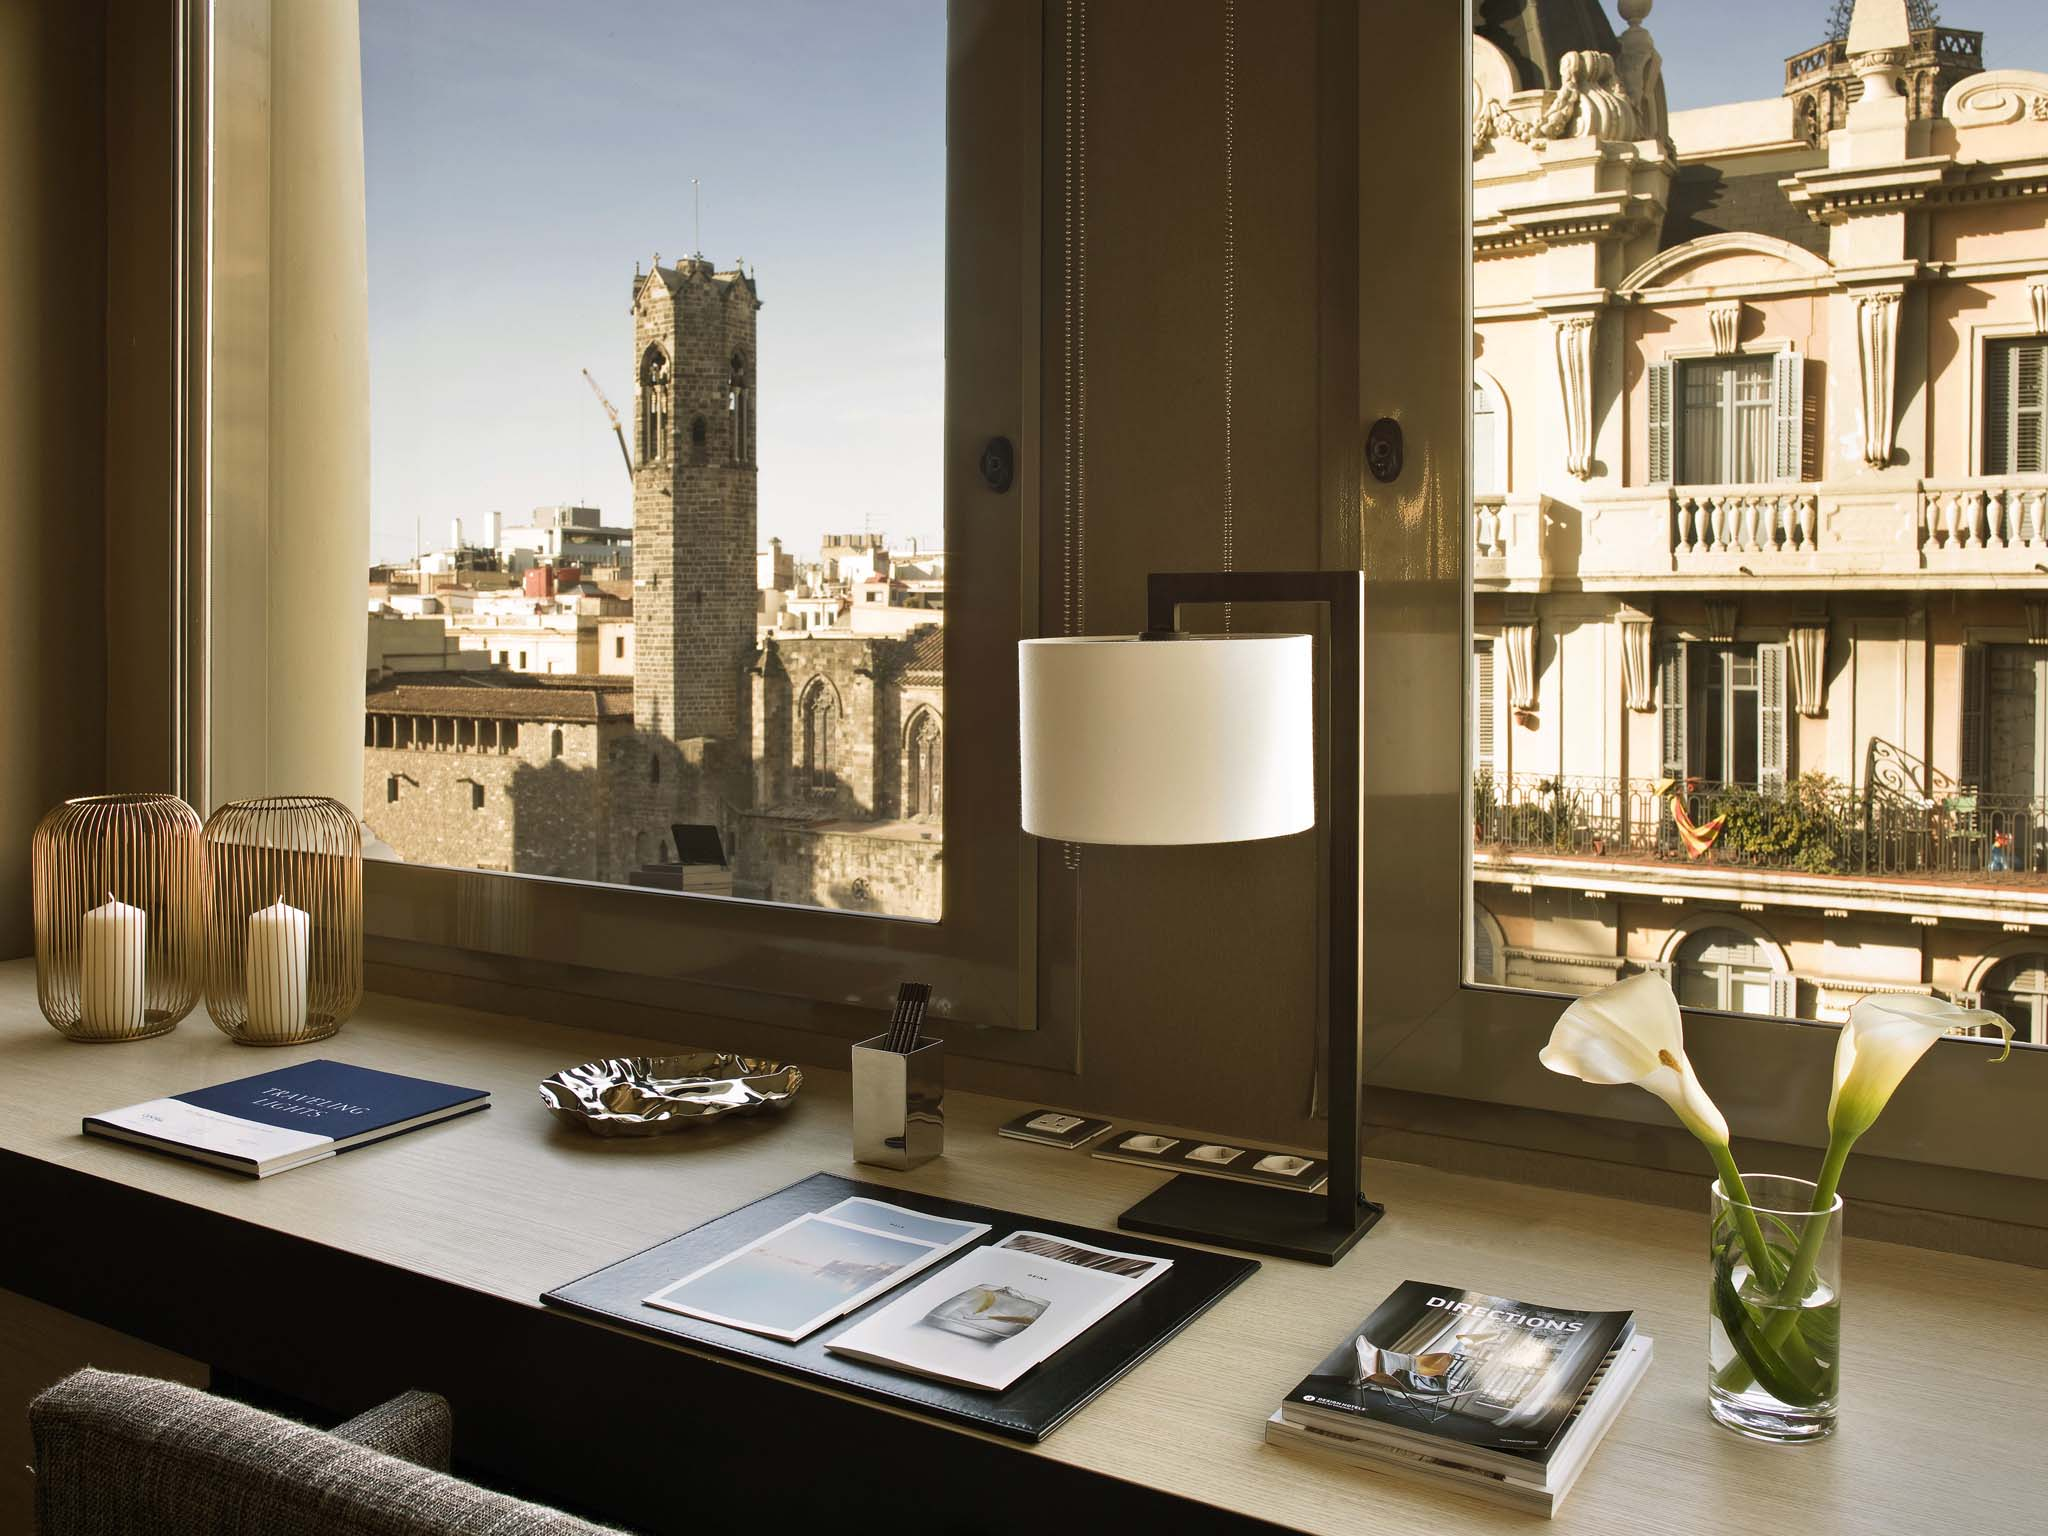 Grand Hotel Central Barcelona Luxury Rooms & Suites | Grand Hotel Central Barcelona